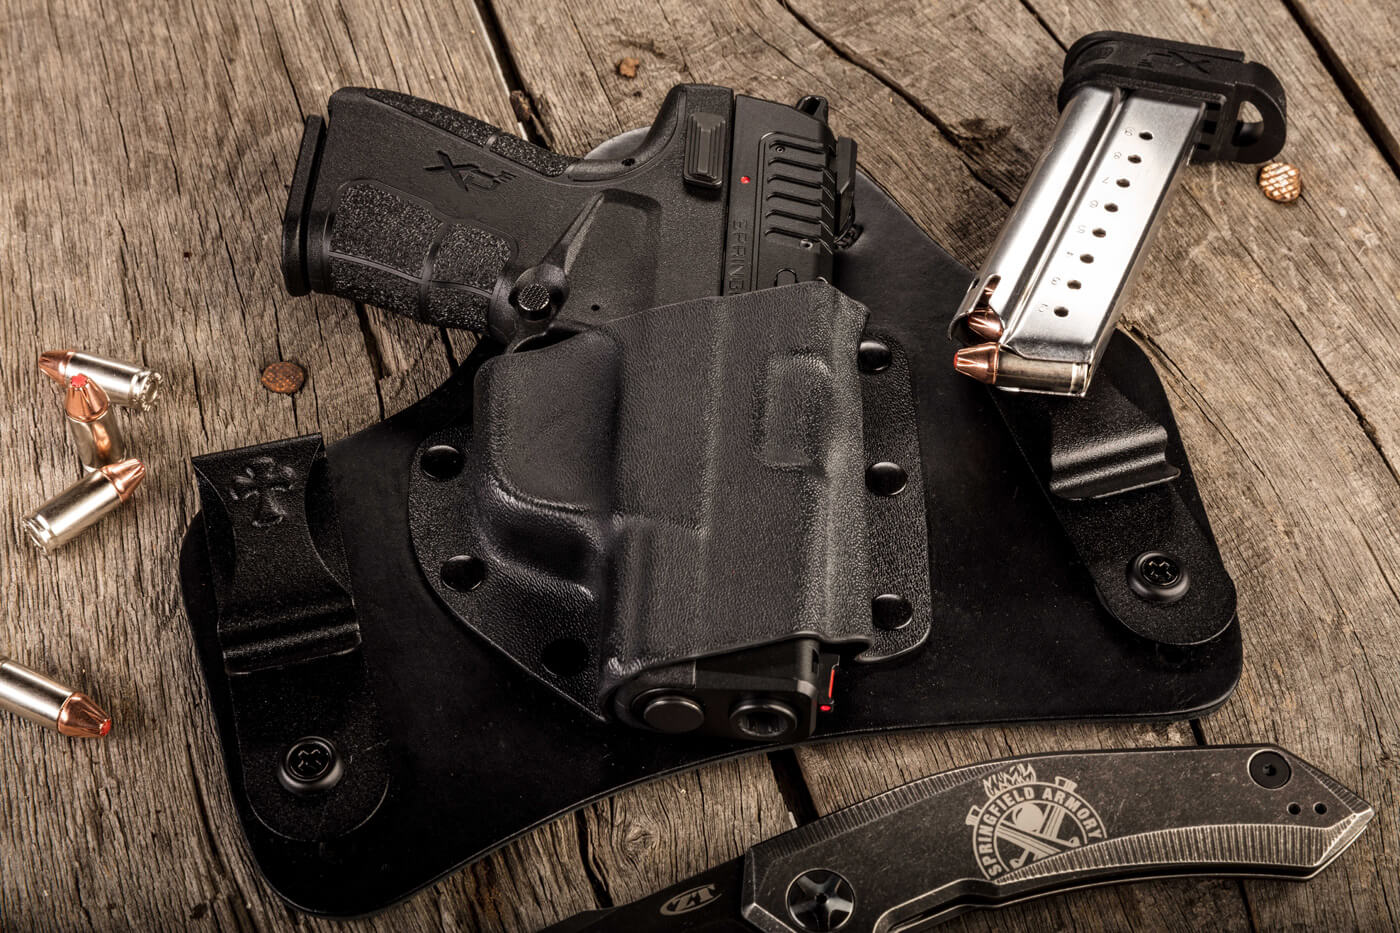 Springfield Armory 9mm CCW pistol in a Crossbreed Holster with a knife